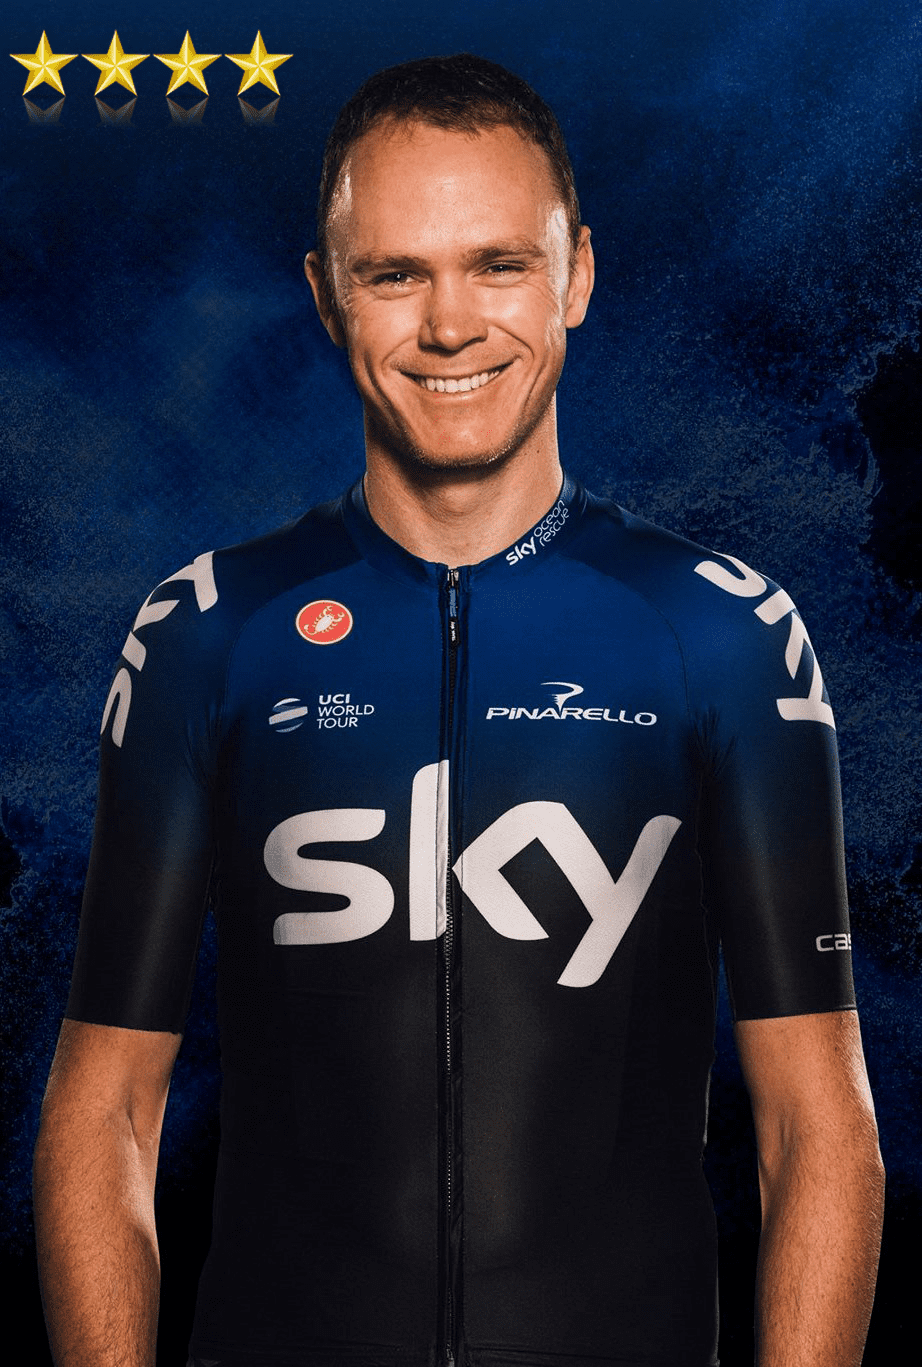 chris froome in the 2019 team sky cycling kit